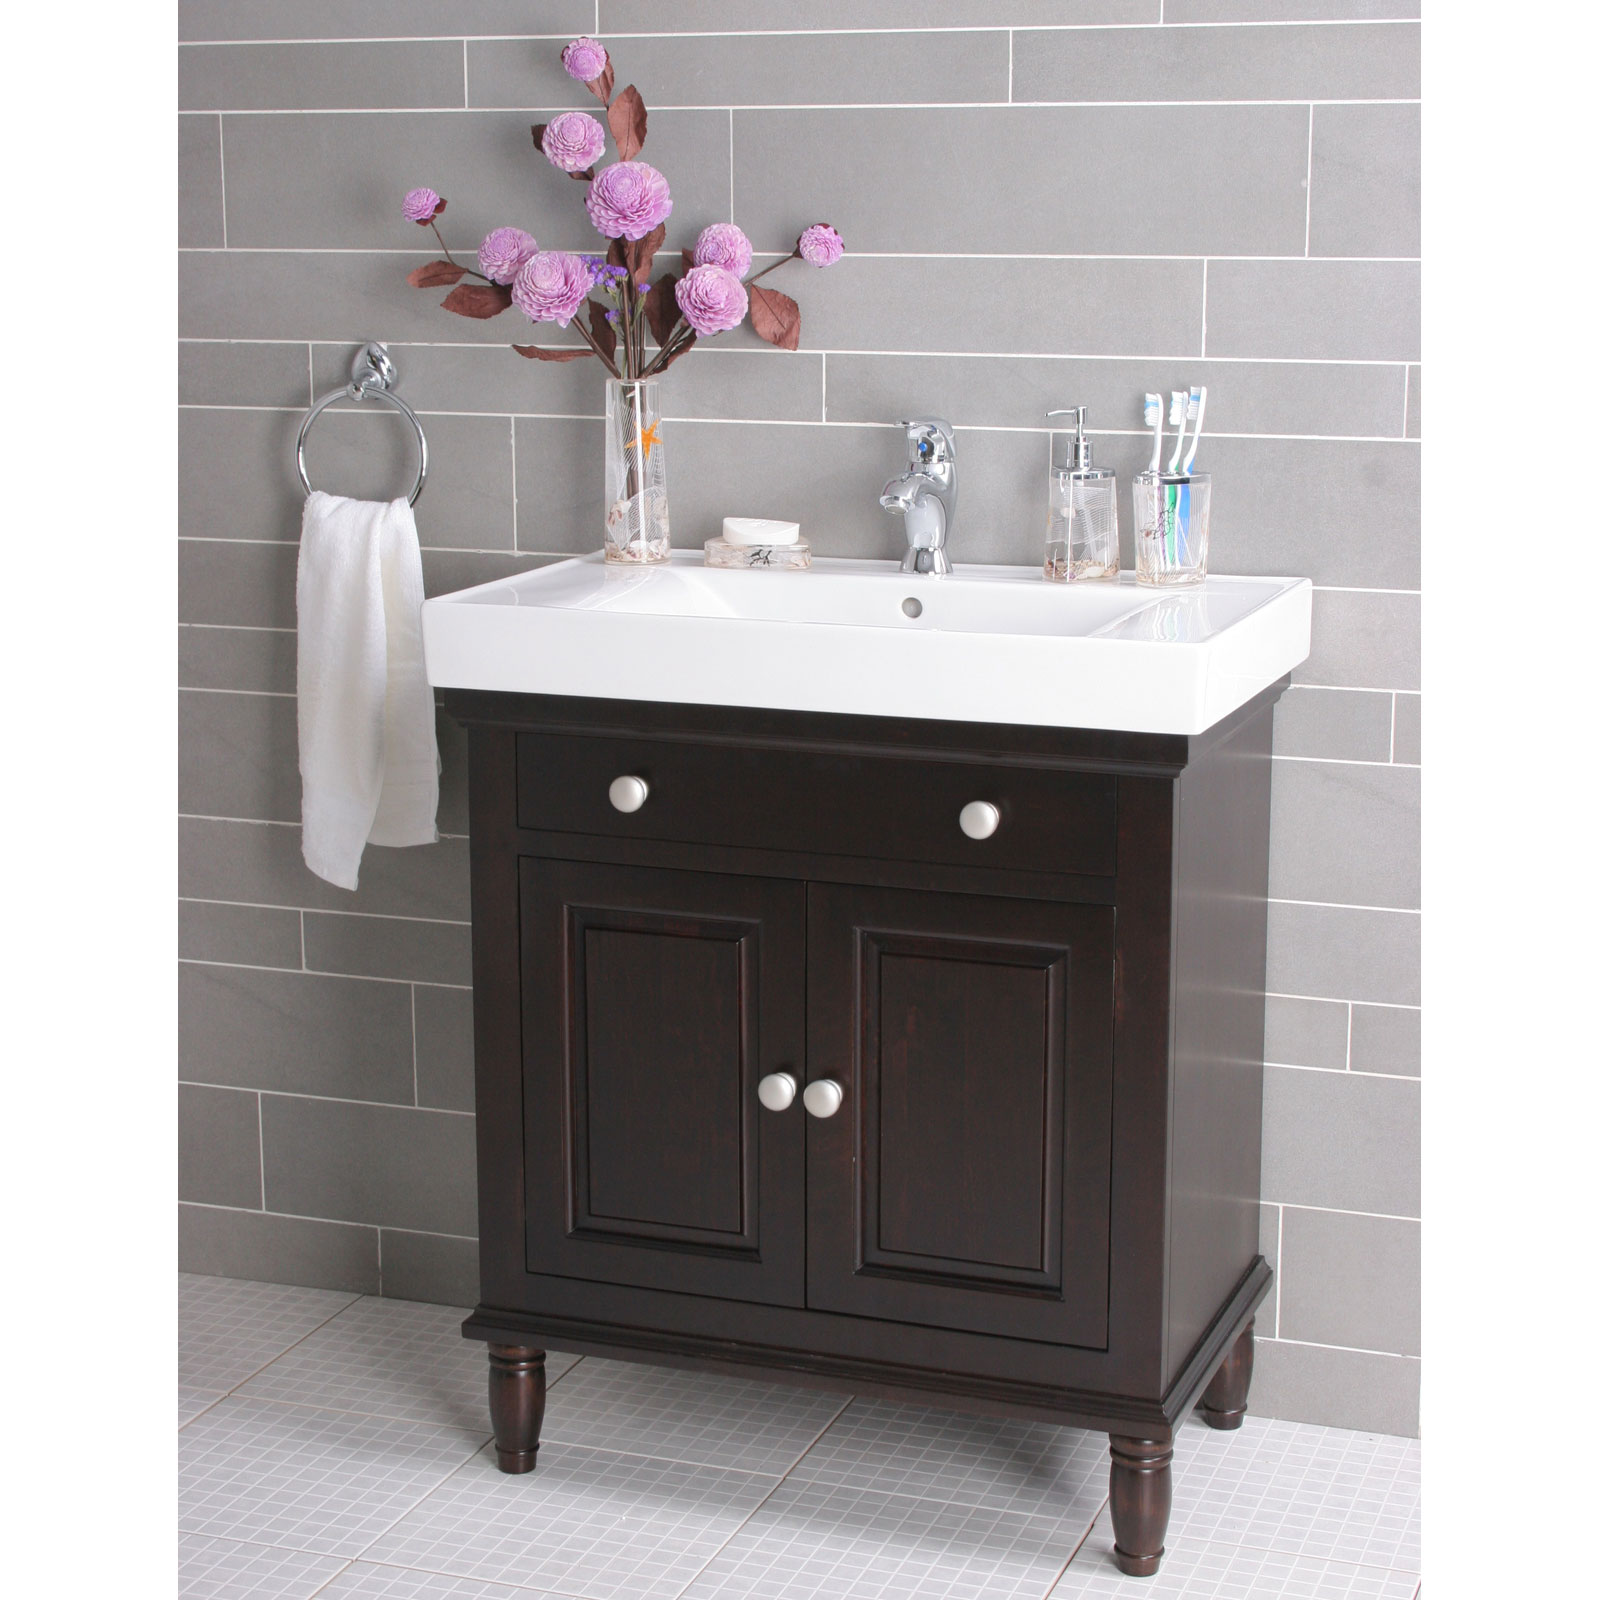 Single Sink Bathroom Vanities : 3 - 4 Stars | Hayneedle.